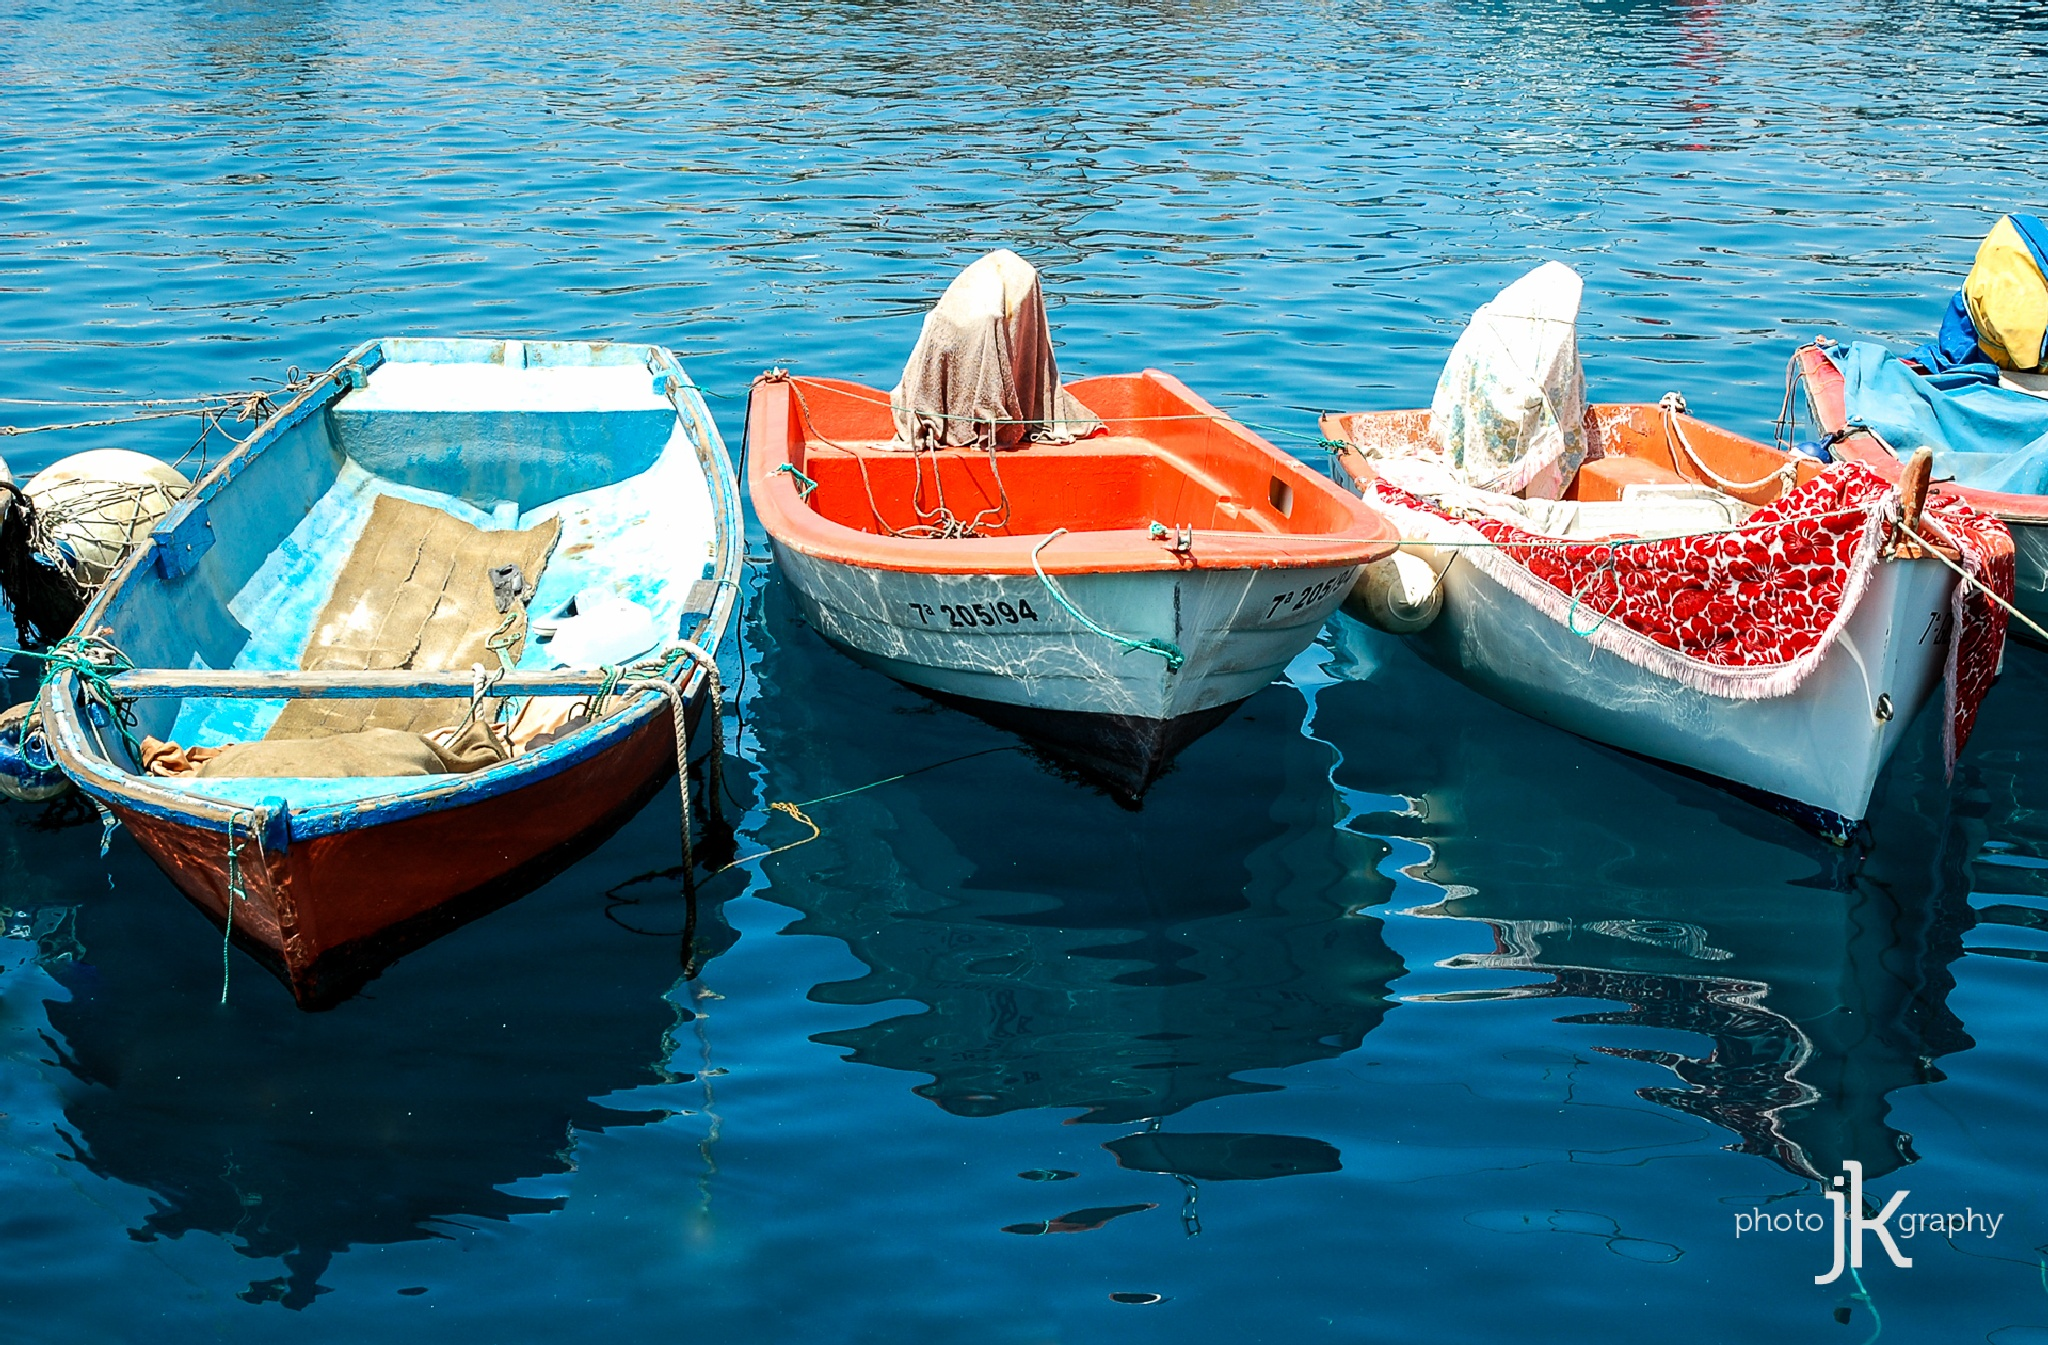 Boats by jk.photography